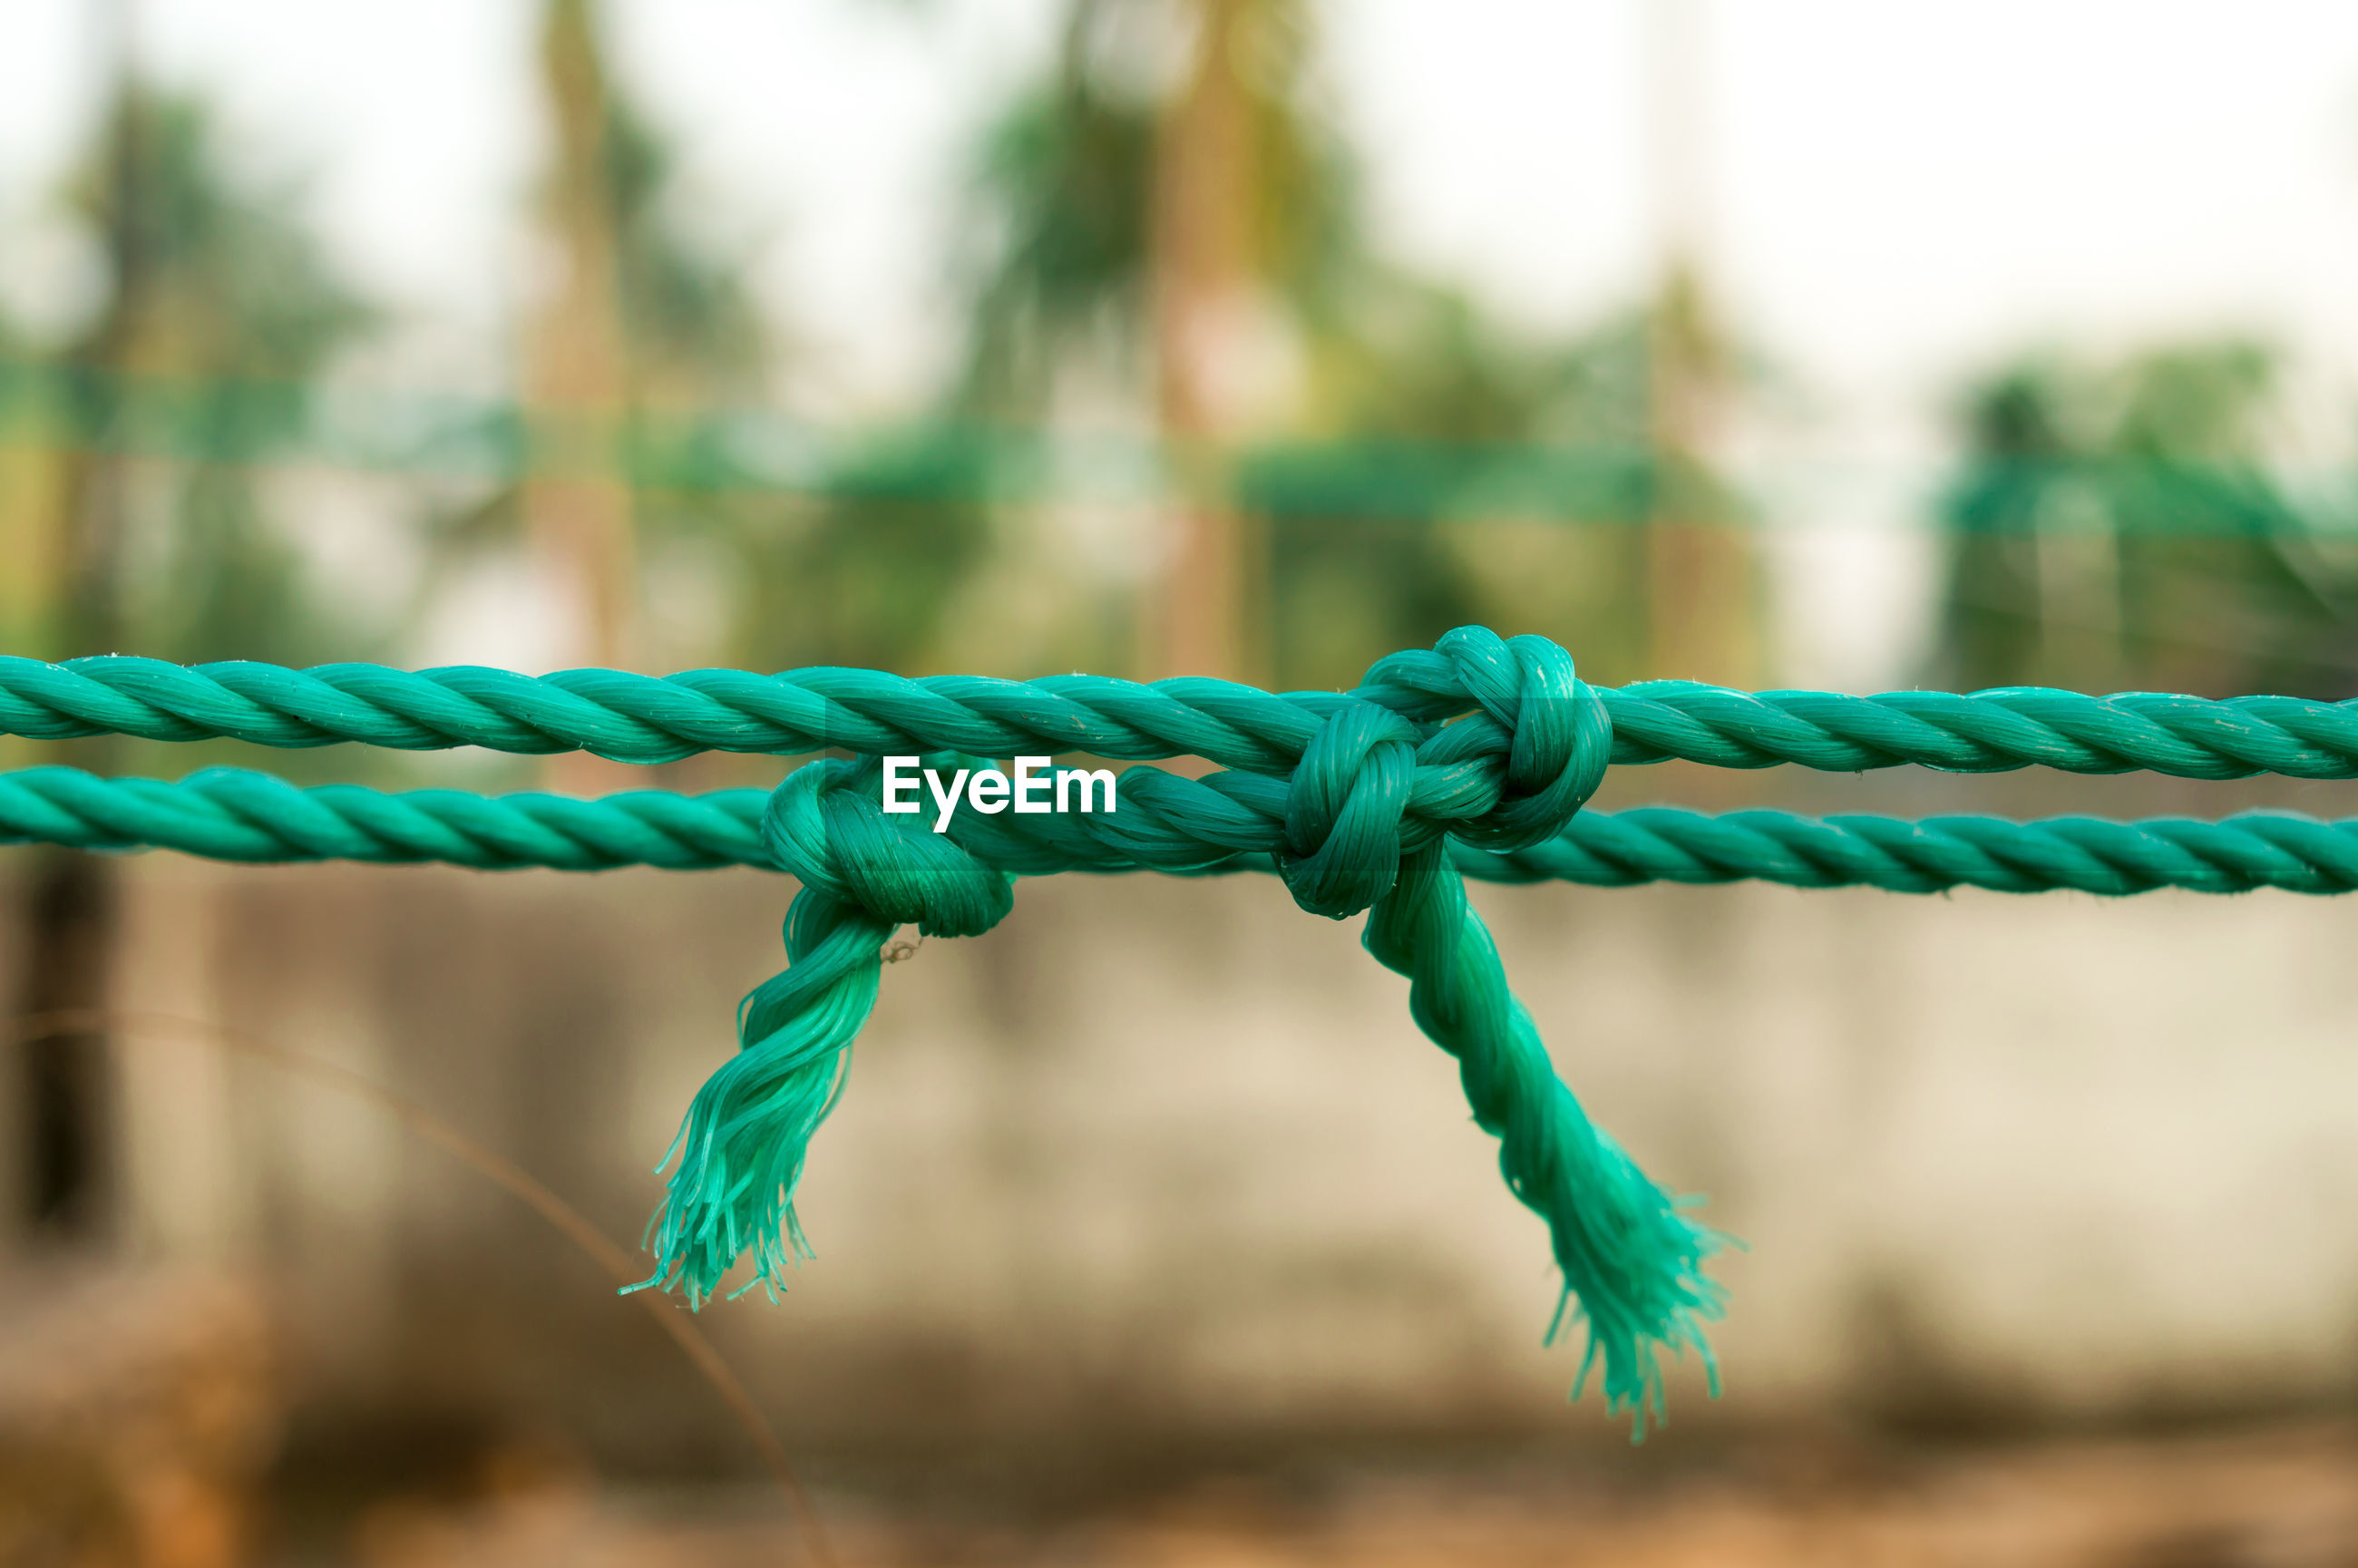 CLOSE-UP OF ROPE TIED ON FENCE